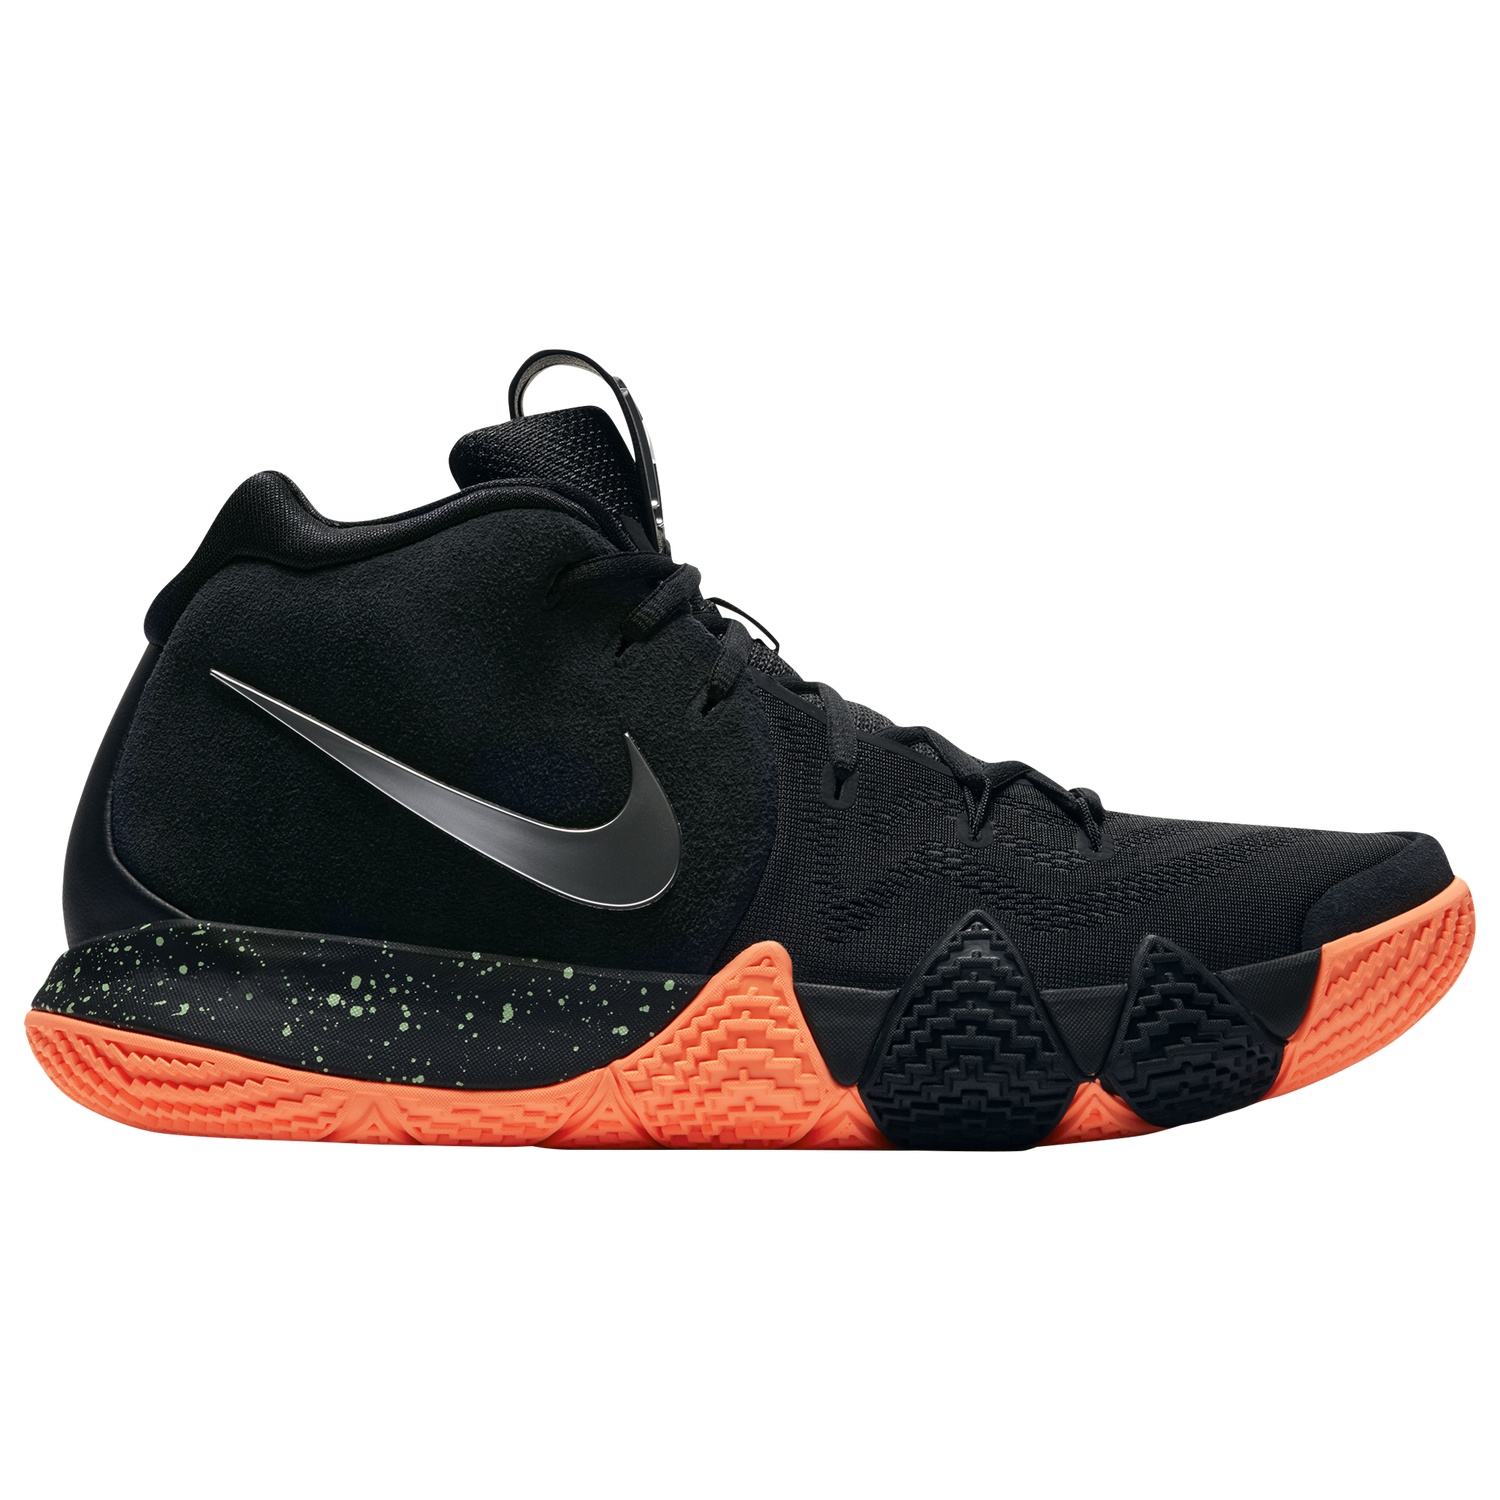 c1ce520e60f160 promo code for nike kyrie 2 all star votes 61bfa 9bc9b